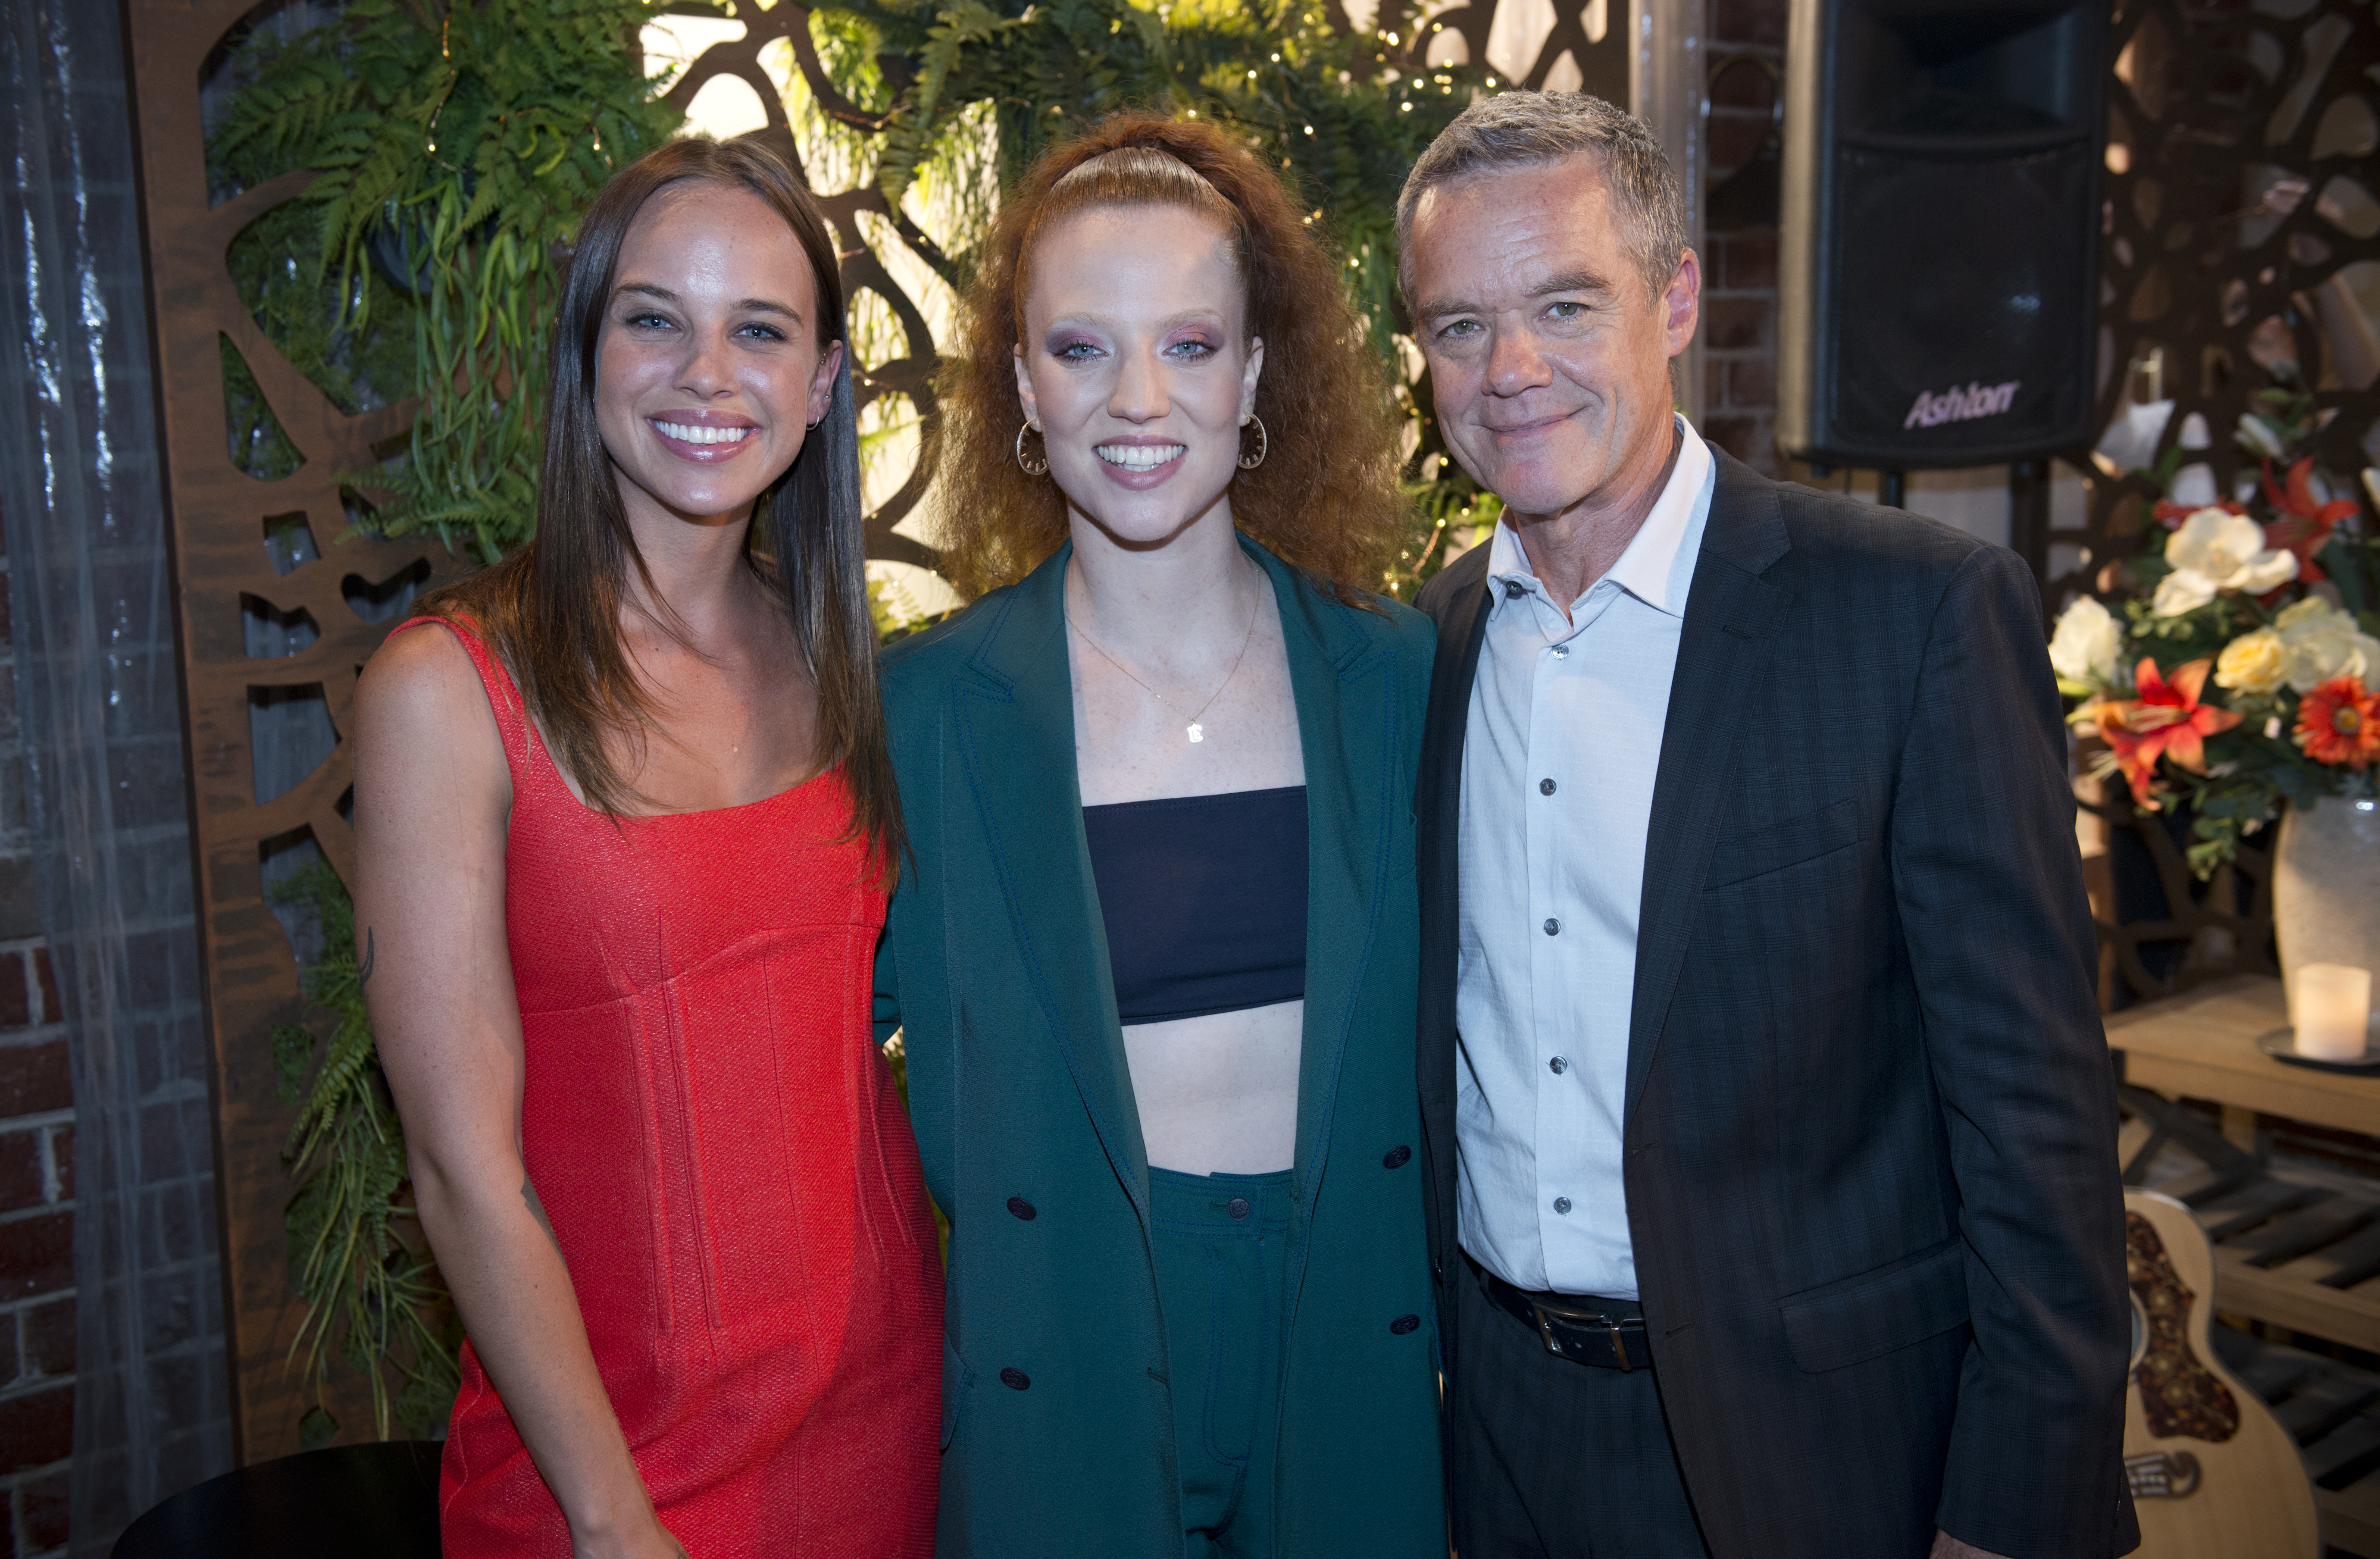 8166 10 - Jess Glynne on Neighbours with Bonnie Anderson and Stefan Dennis Credit: Channel 5